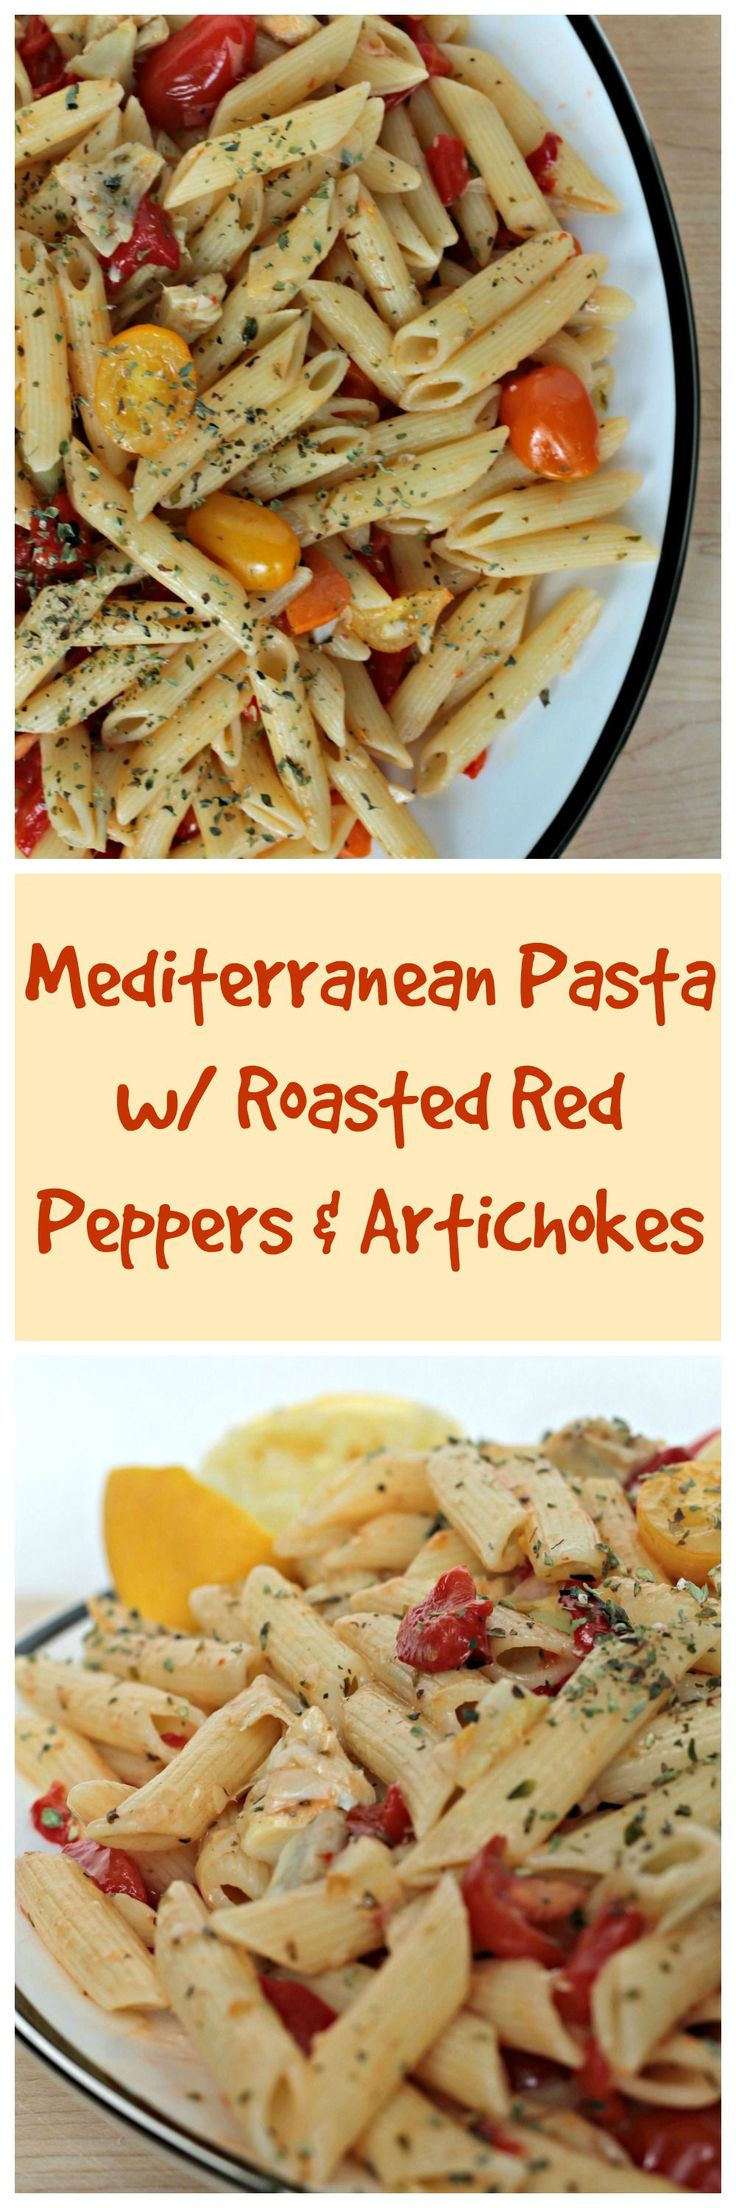 Mediterranean Pasta w/ Roasted Red Peppers & Artichokes - a 20 minutes pasta dish